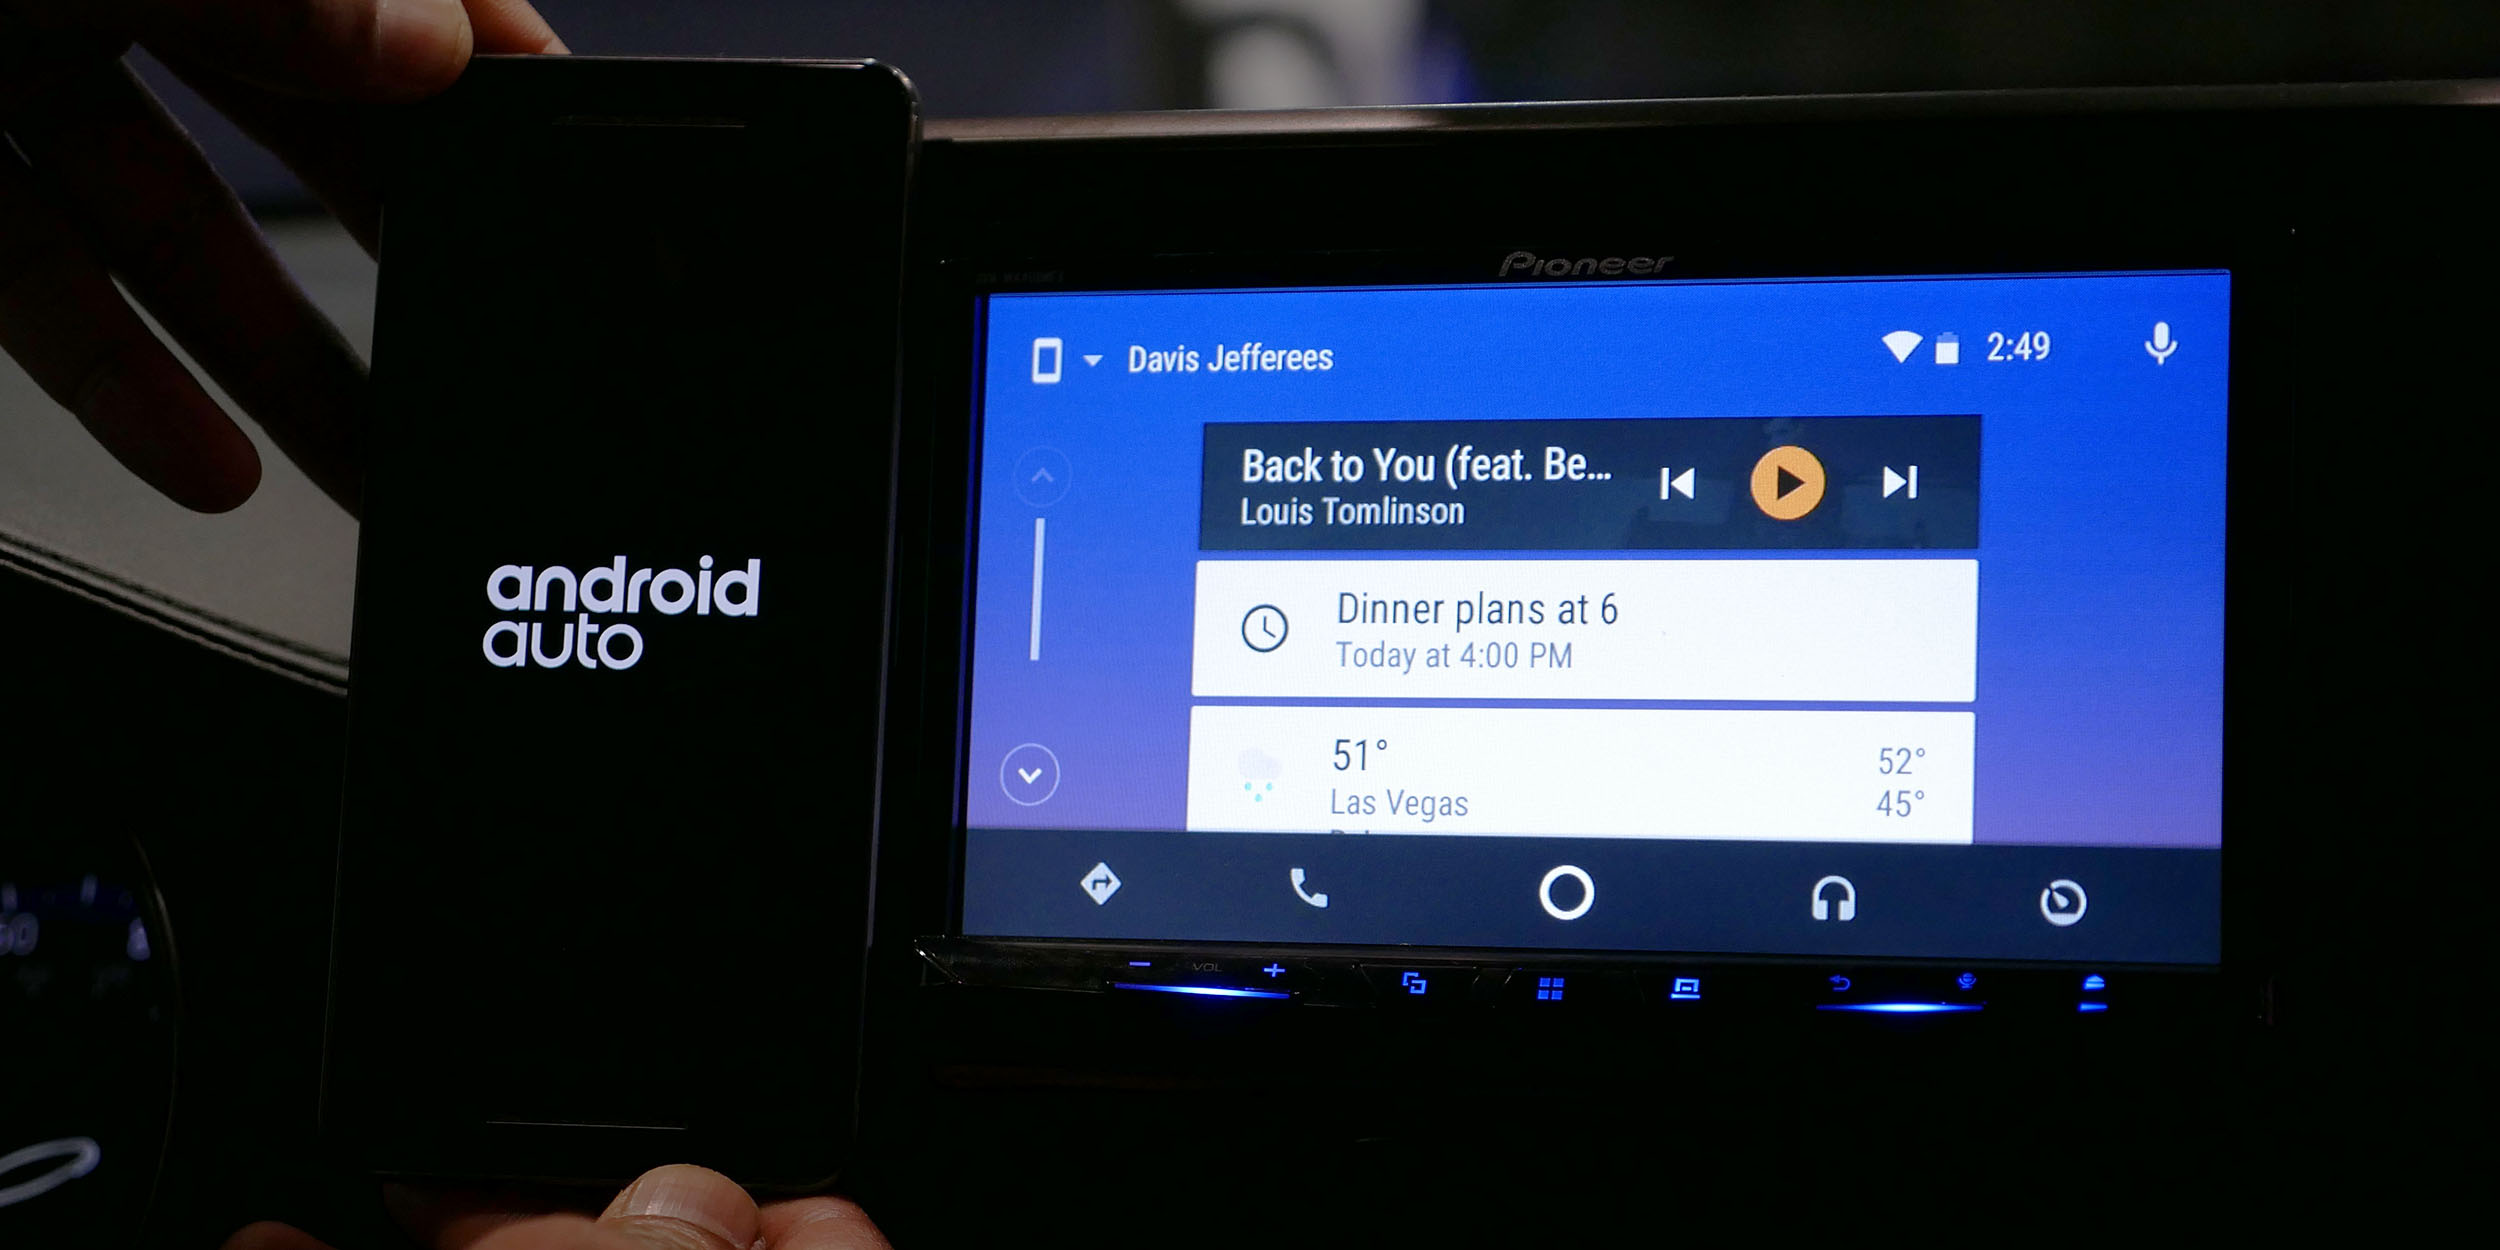 You can now view your entire contact list on Android Auto